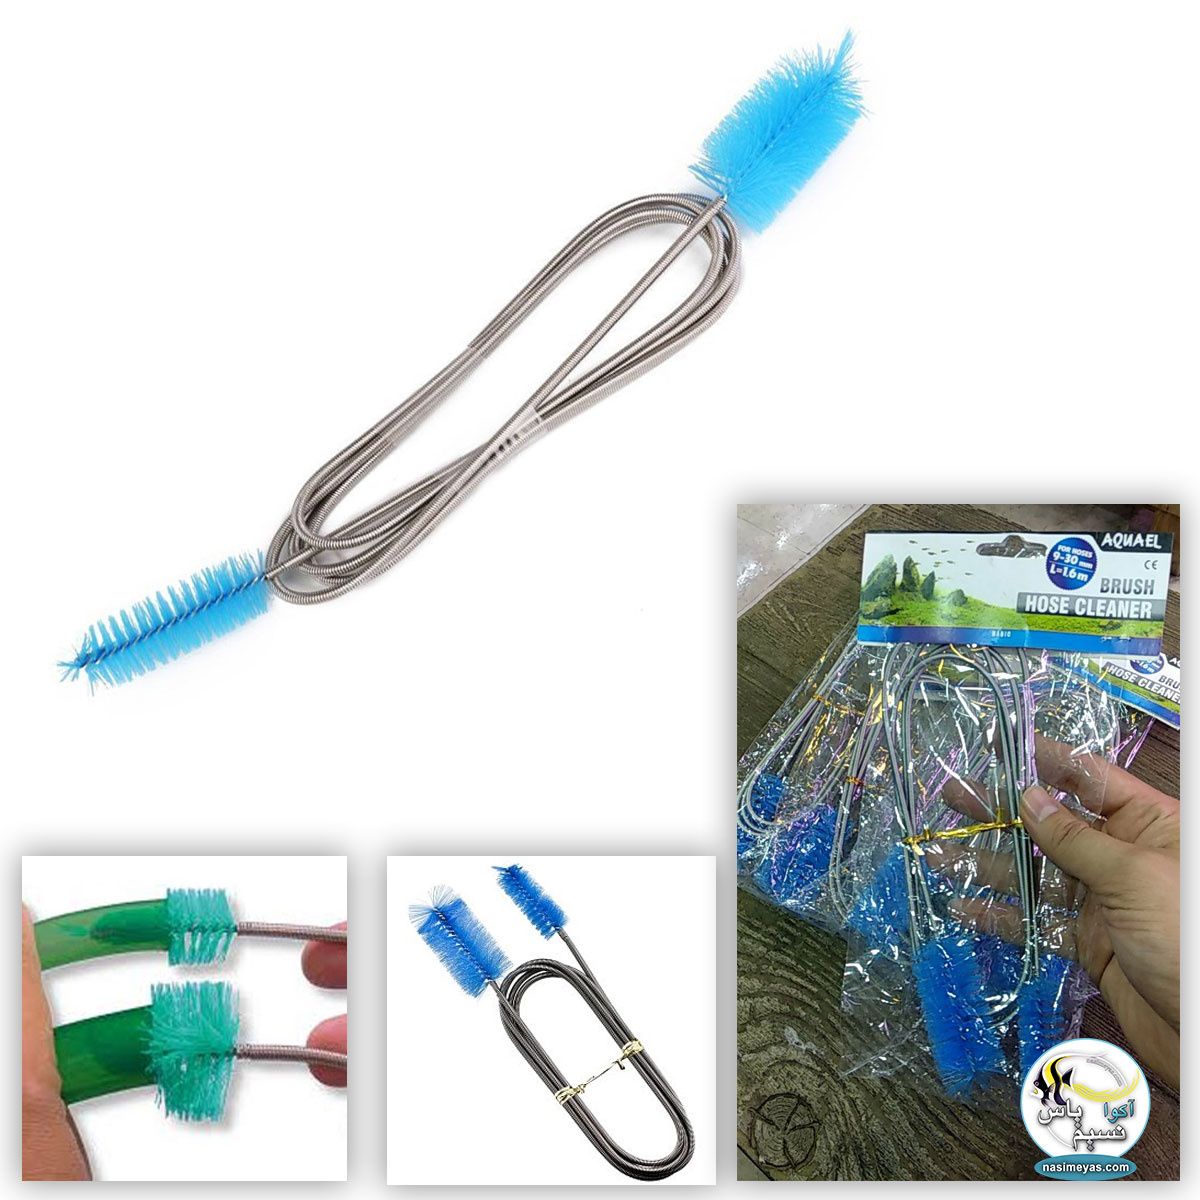 AquaEL Brush Hose Cleaner